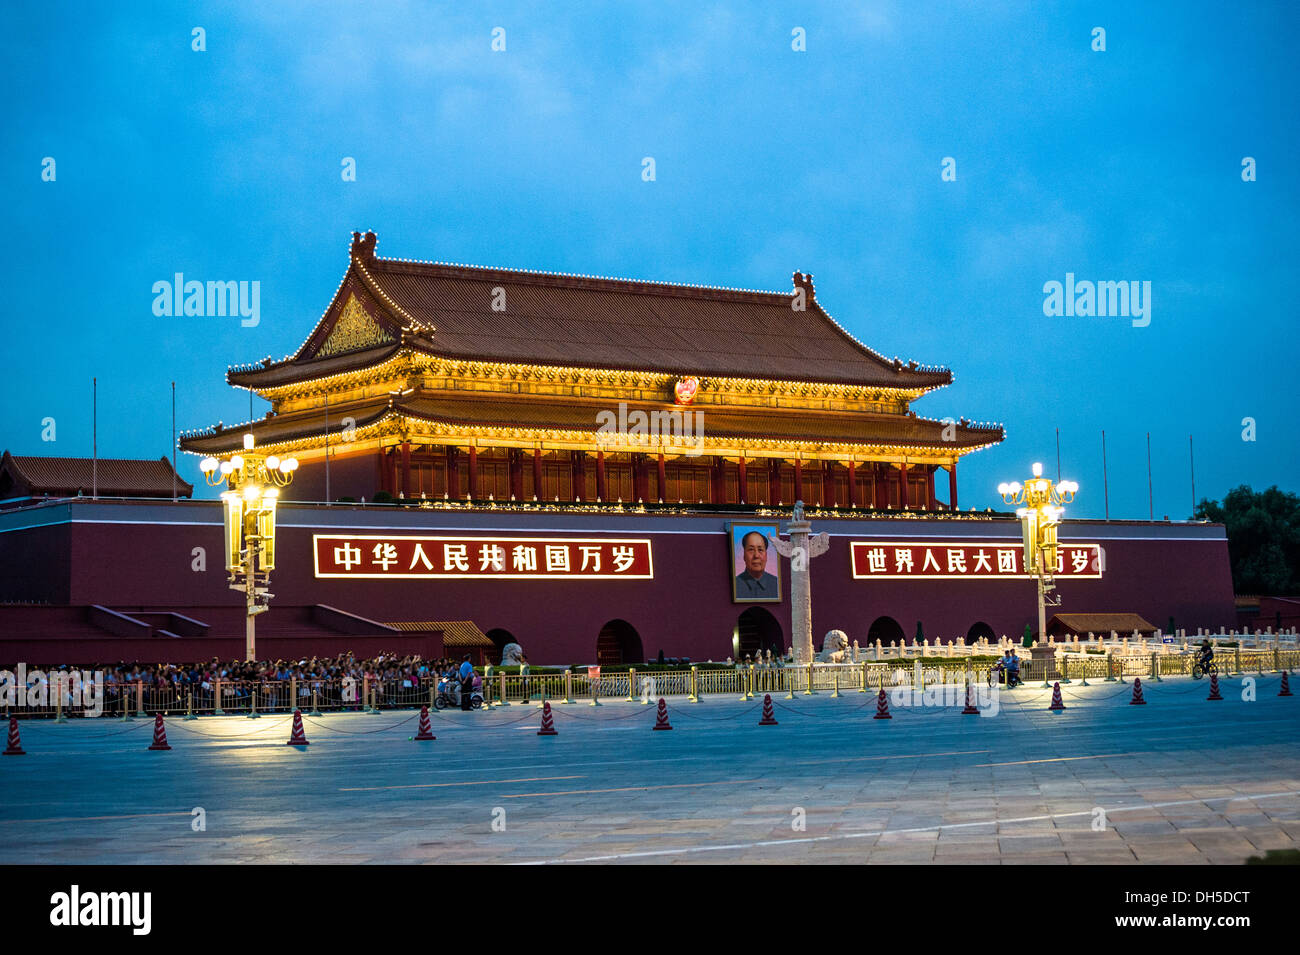 Tiananmen tower  at dusk - Stock Image